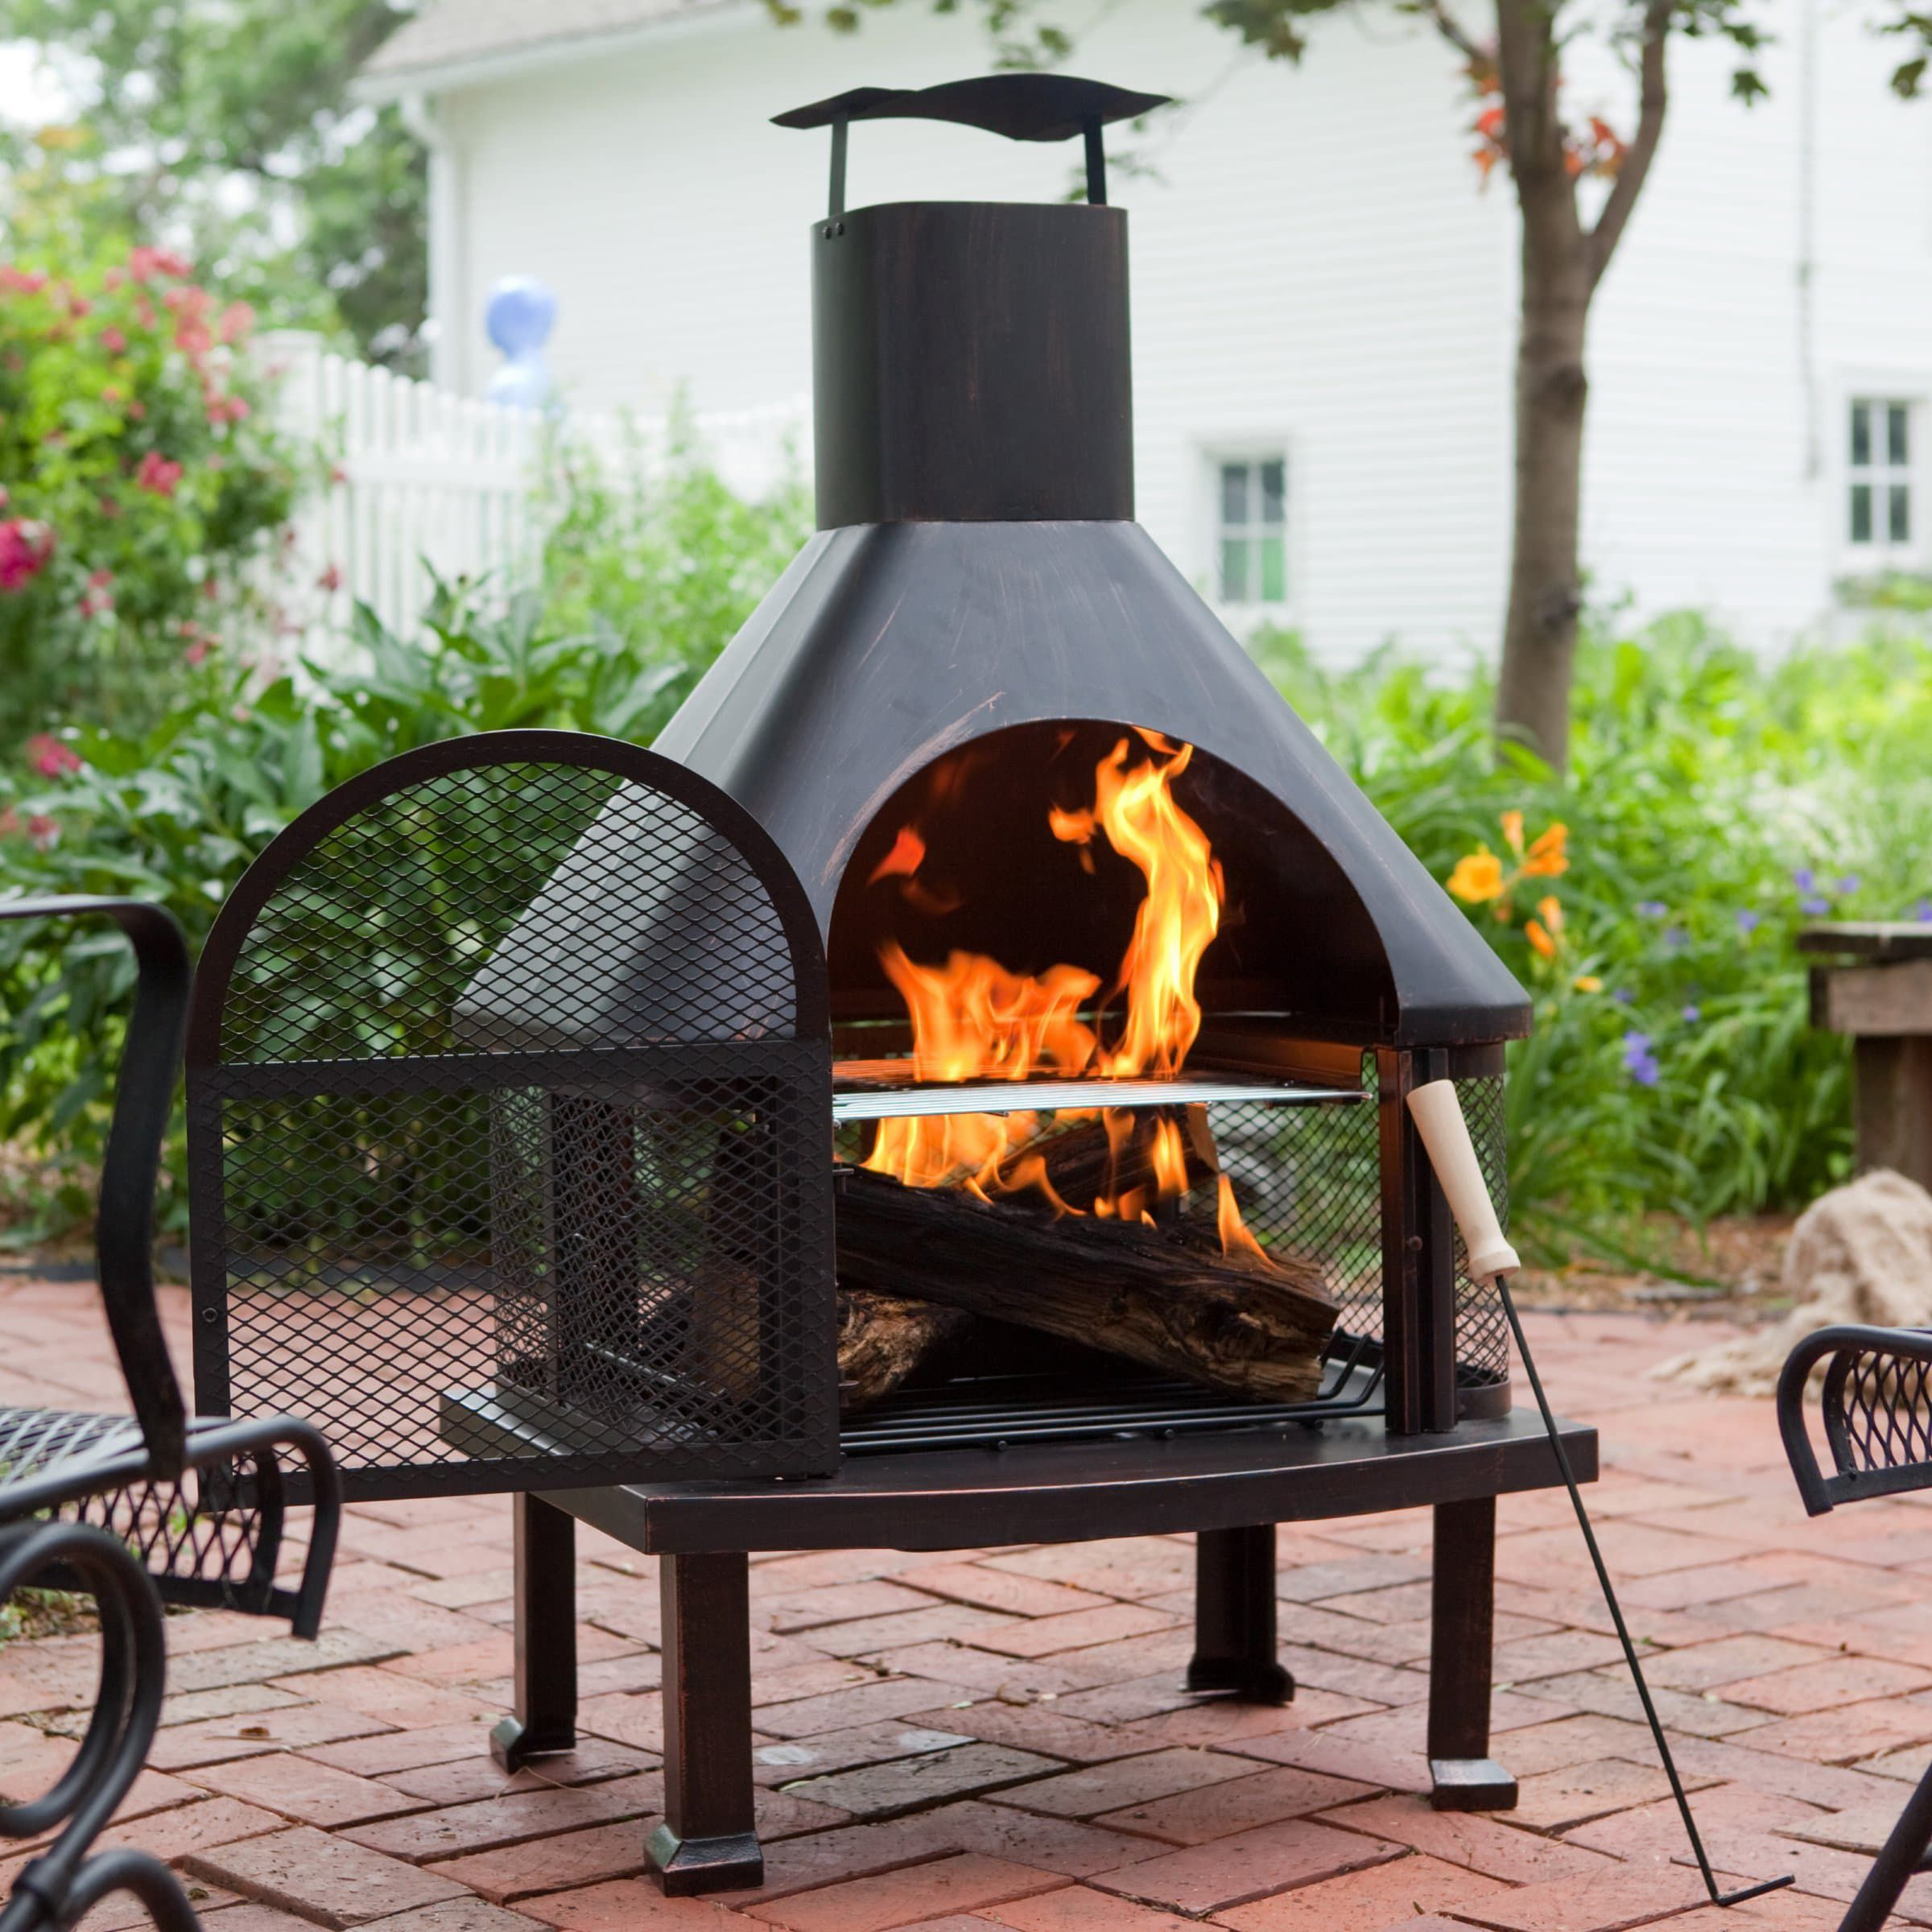 Stay outside longer fire pits to keep you toasty budgeting